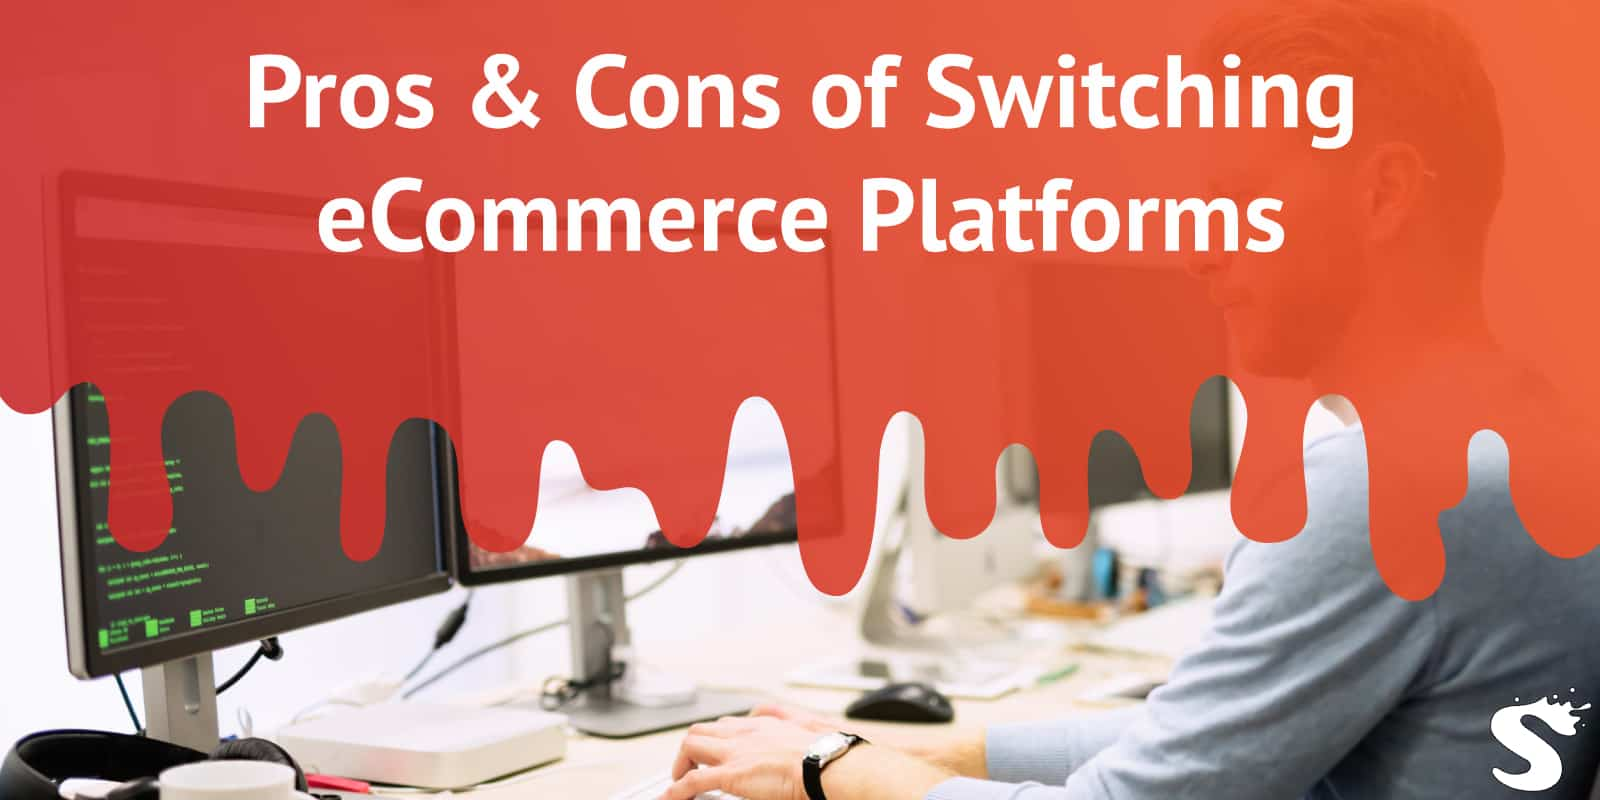 Pros and Cons of Switching Ecommerce Platforms